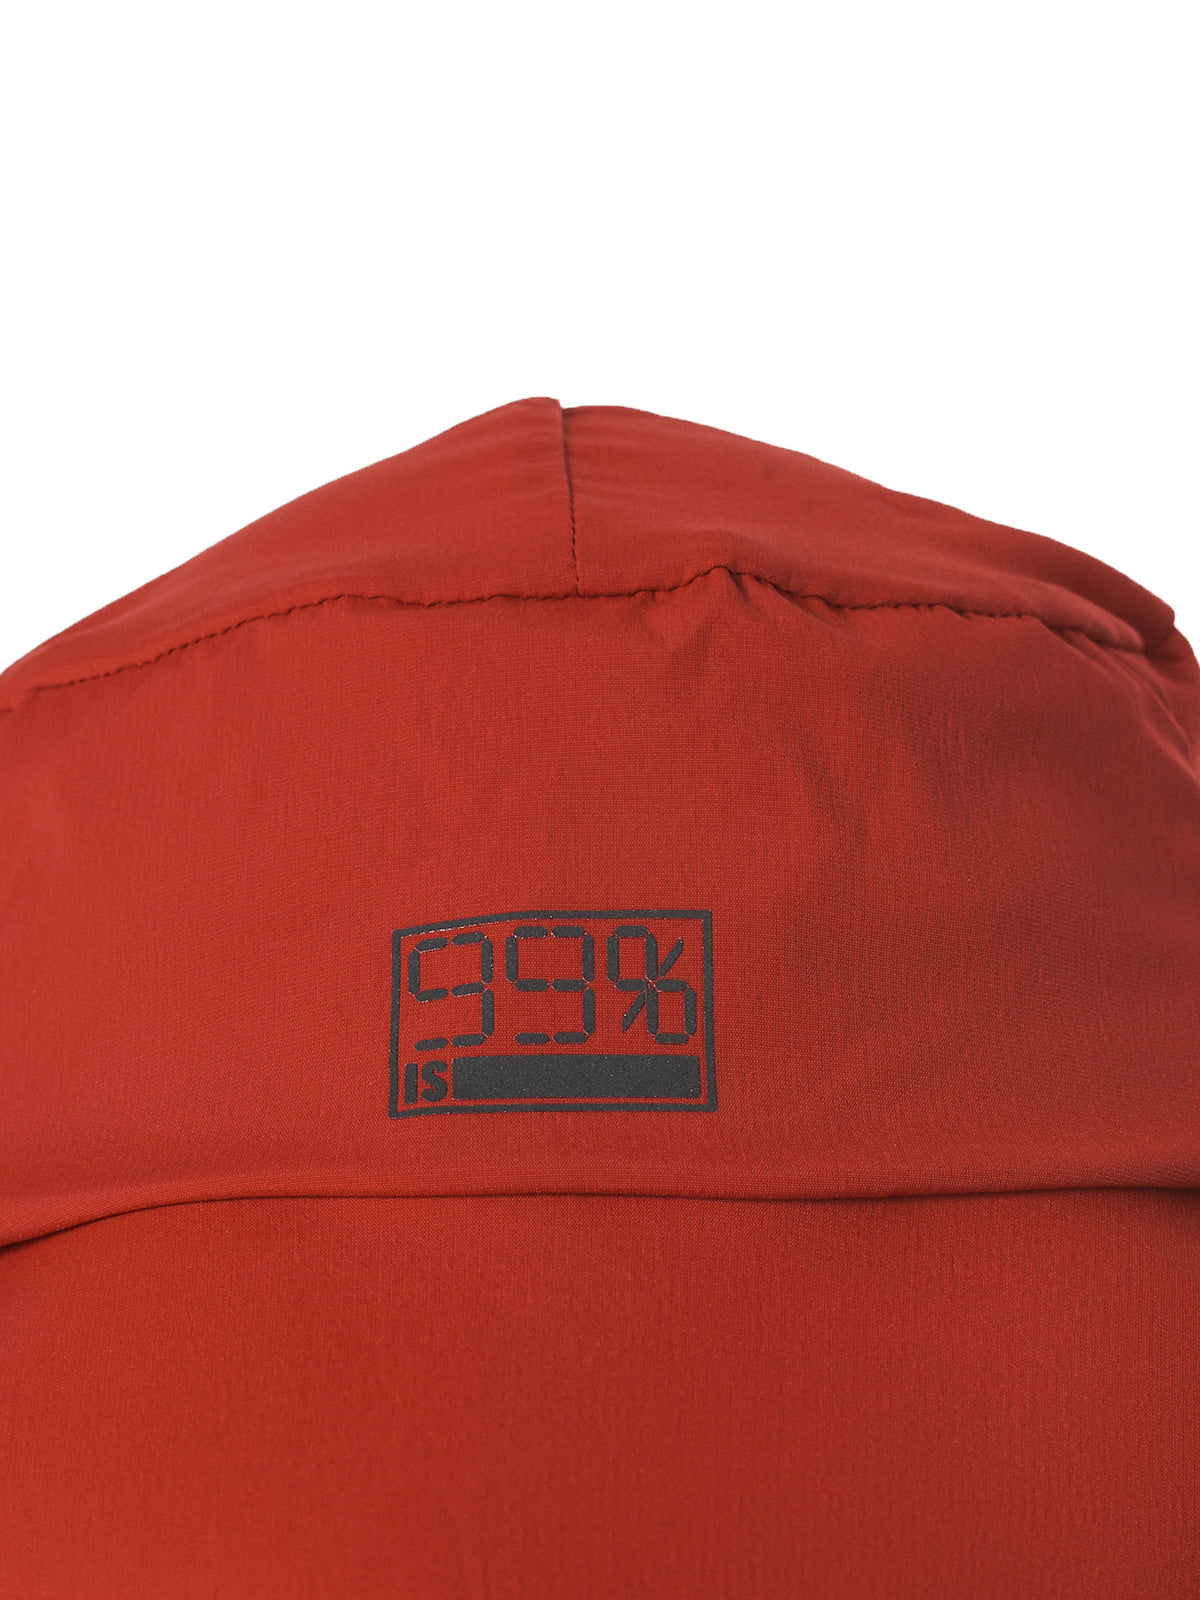 'Night To Dreams' Shielded Cap (NN11-ACC01-RED)